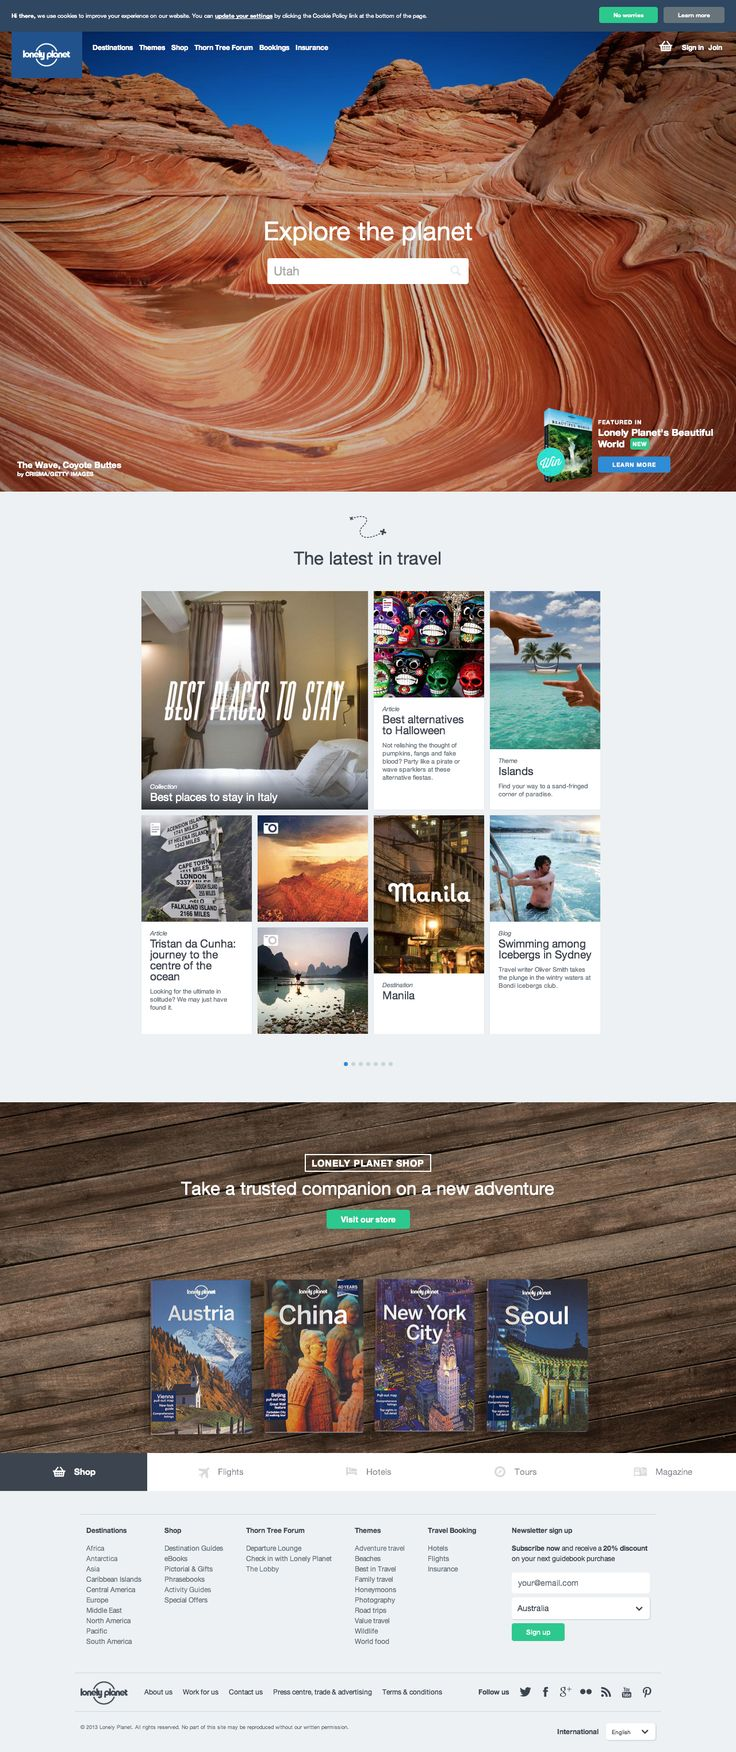 Lonelyplanet.com Website design #travel #website #grid